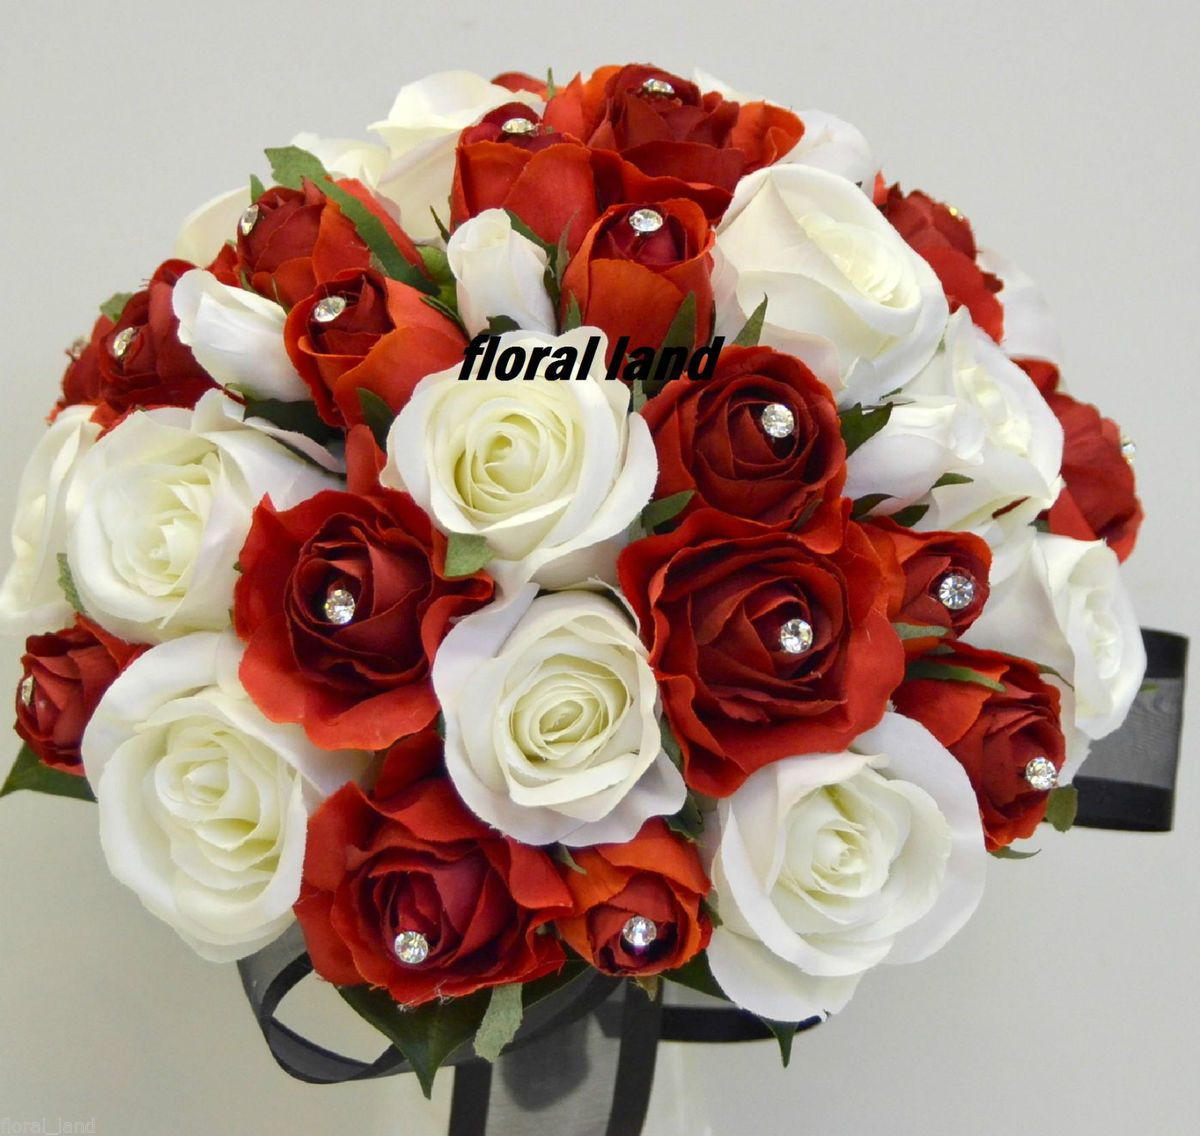 Red roses wedding bouquet bouquet bridal bouquets handtied bouquet of fake flowers in red silk flower wedding bouquet red white rose diamontie posy dhlflorist Image collections